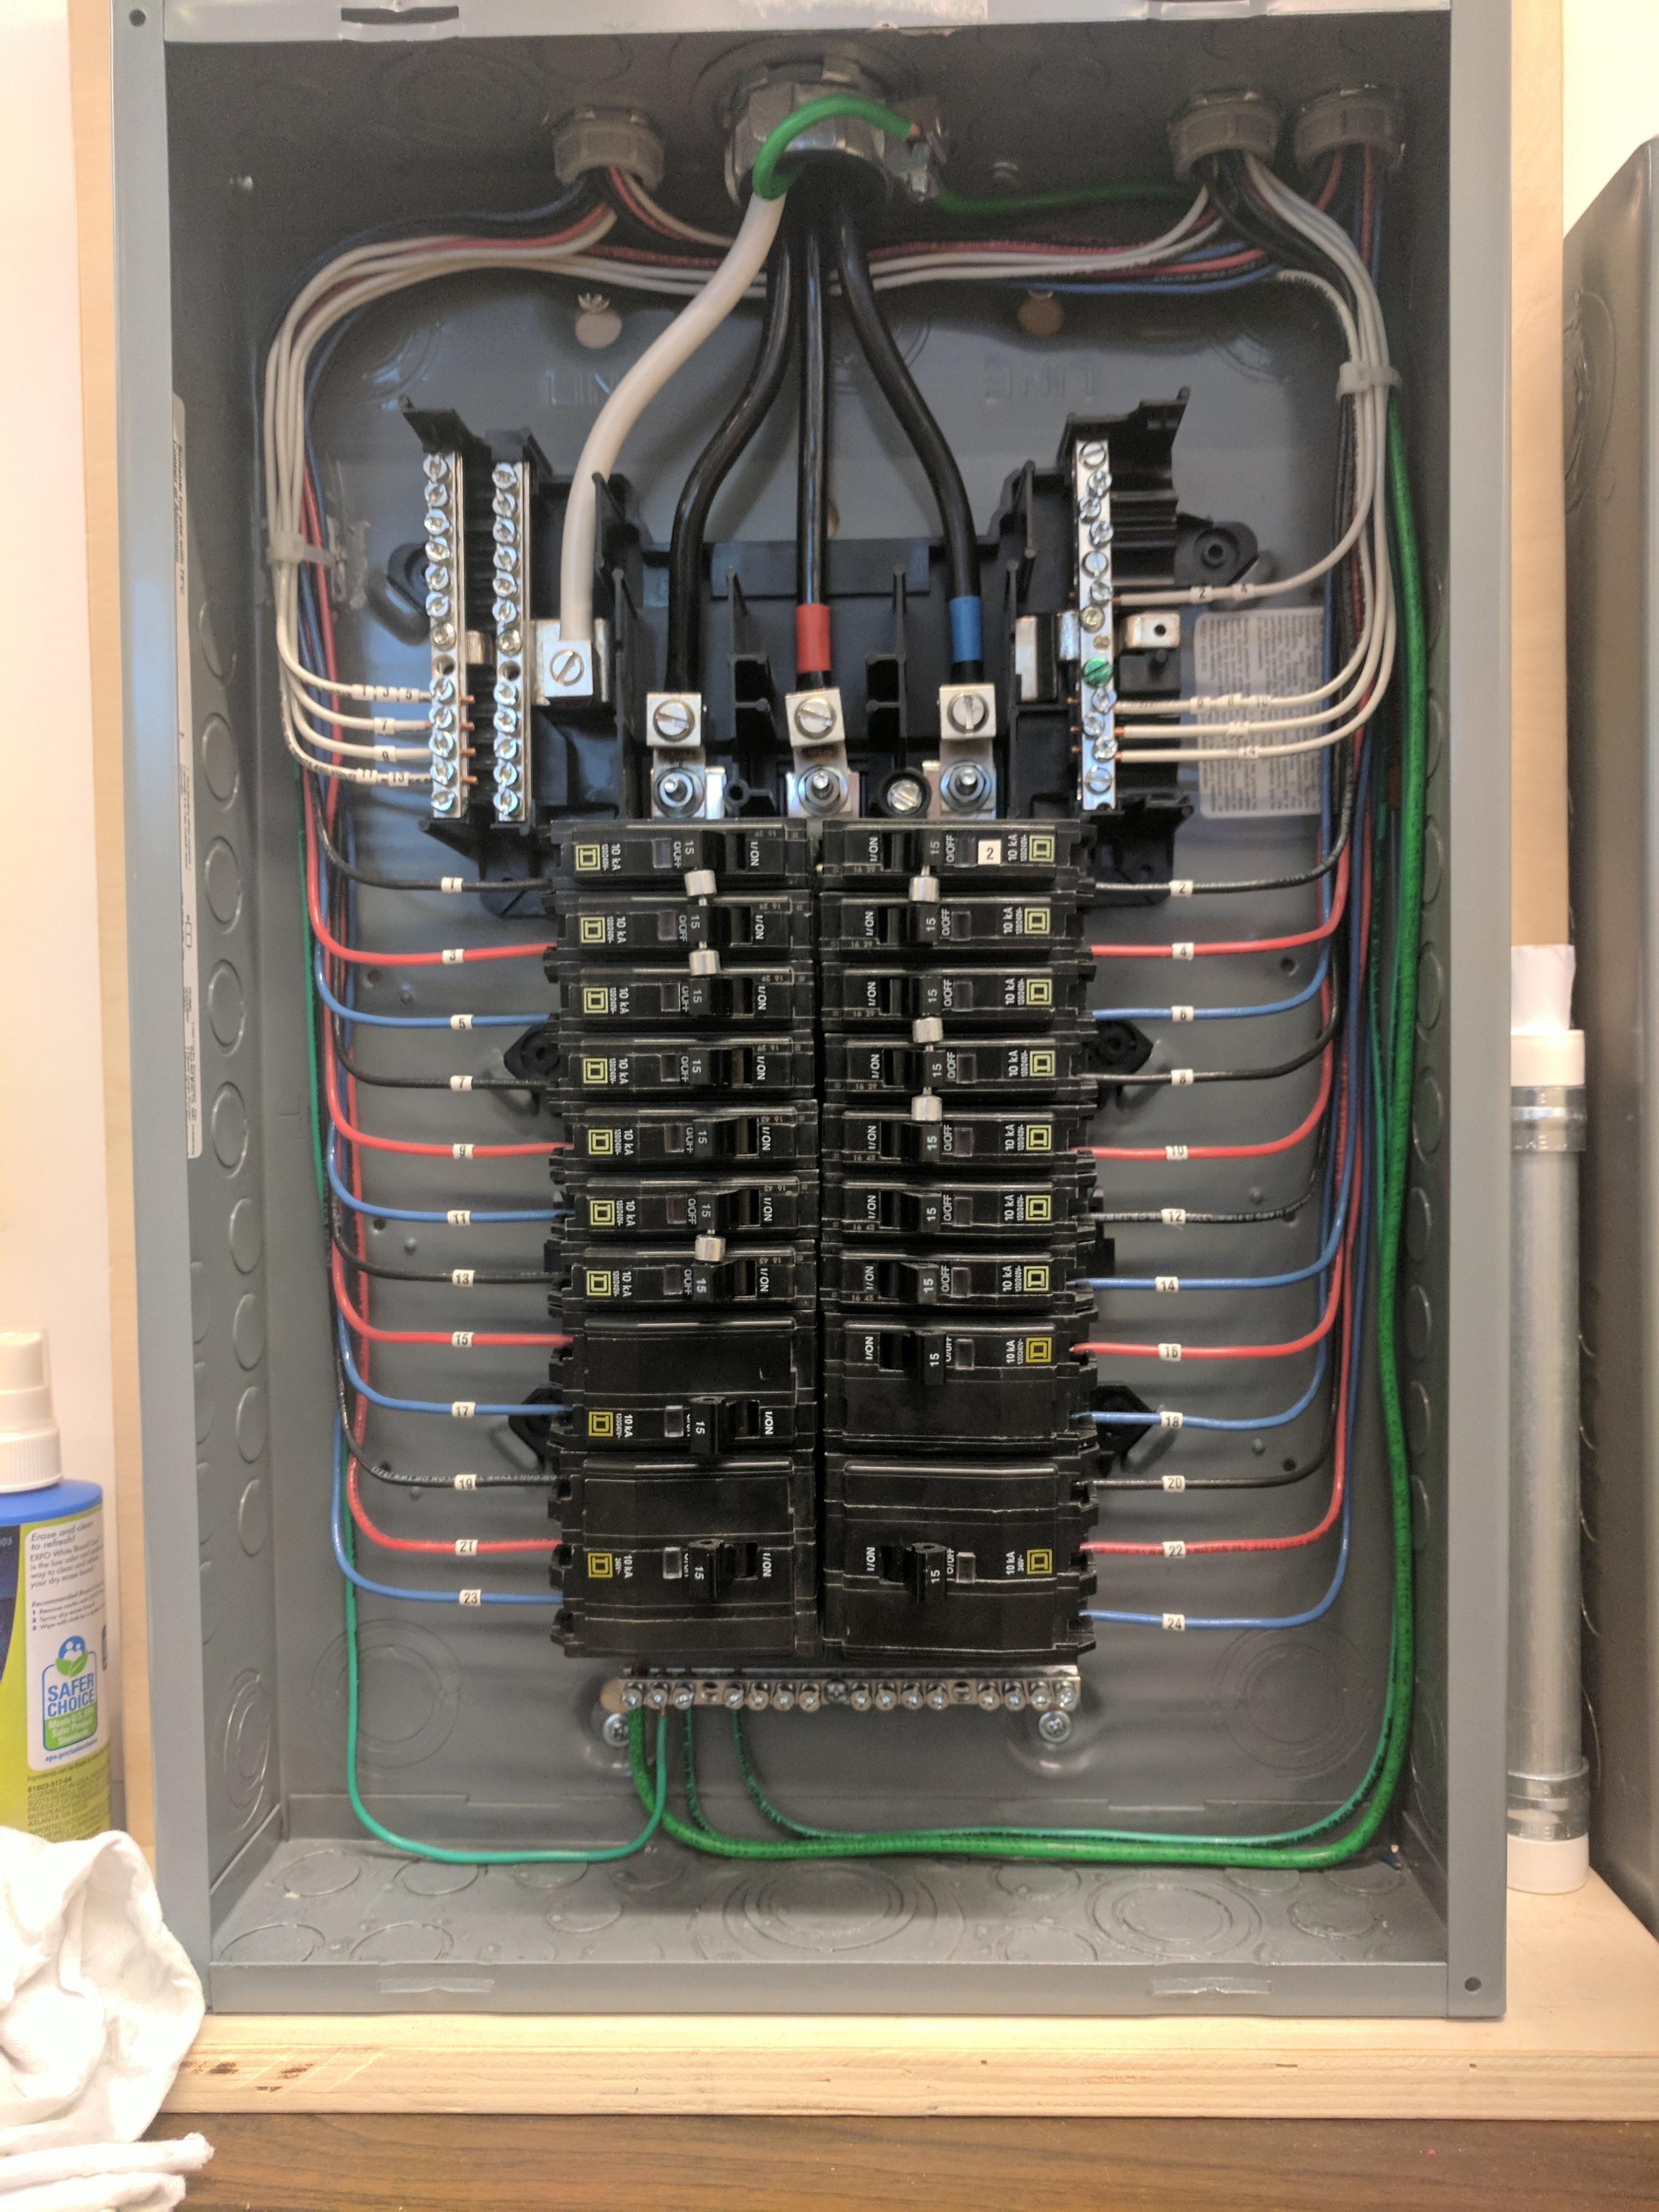 100 Amp Meter With Breaker Box Wiring Diagram How An Electrical Panel Should Look Cableporn